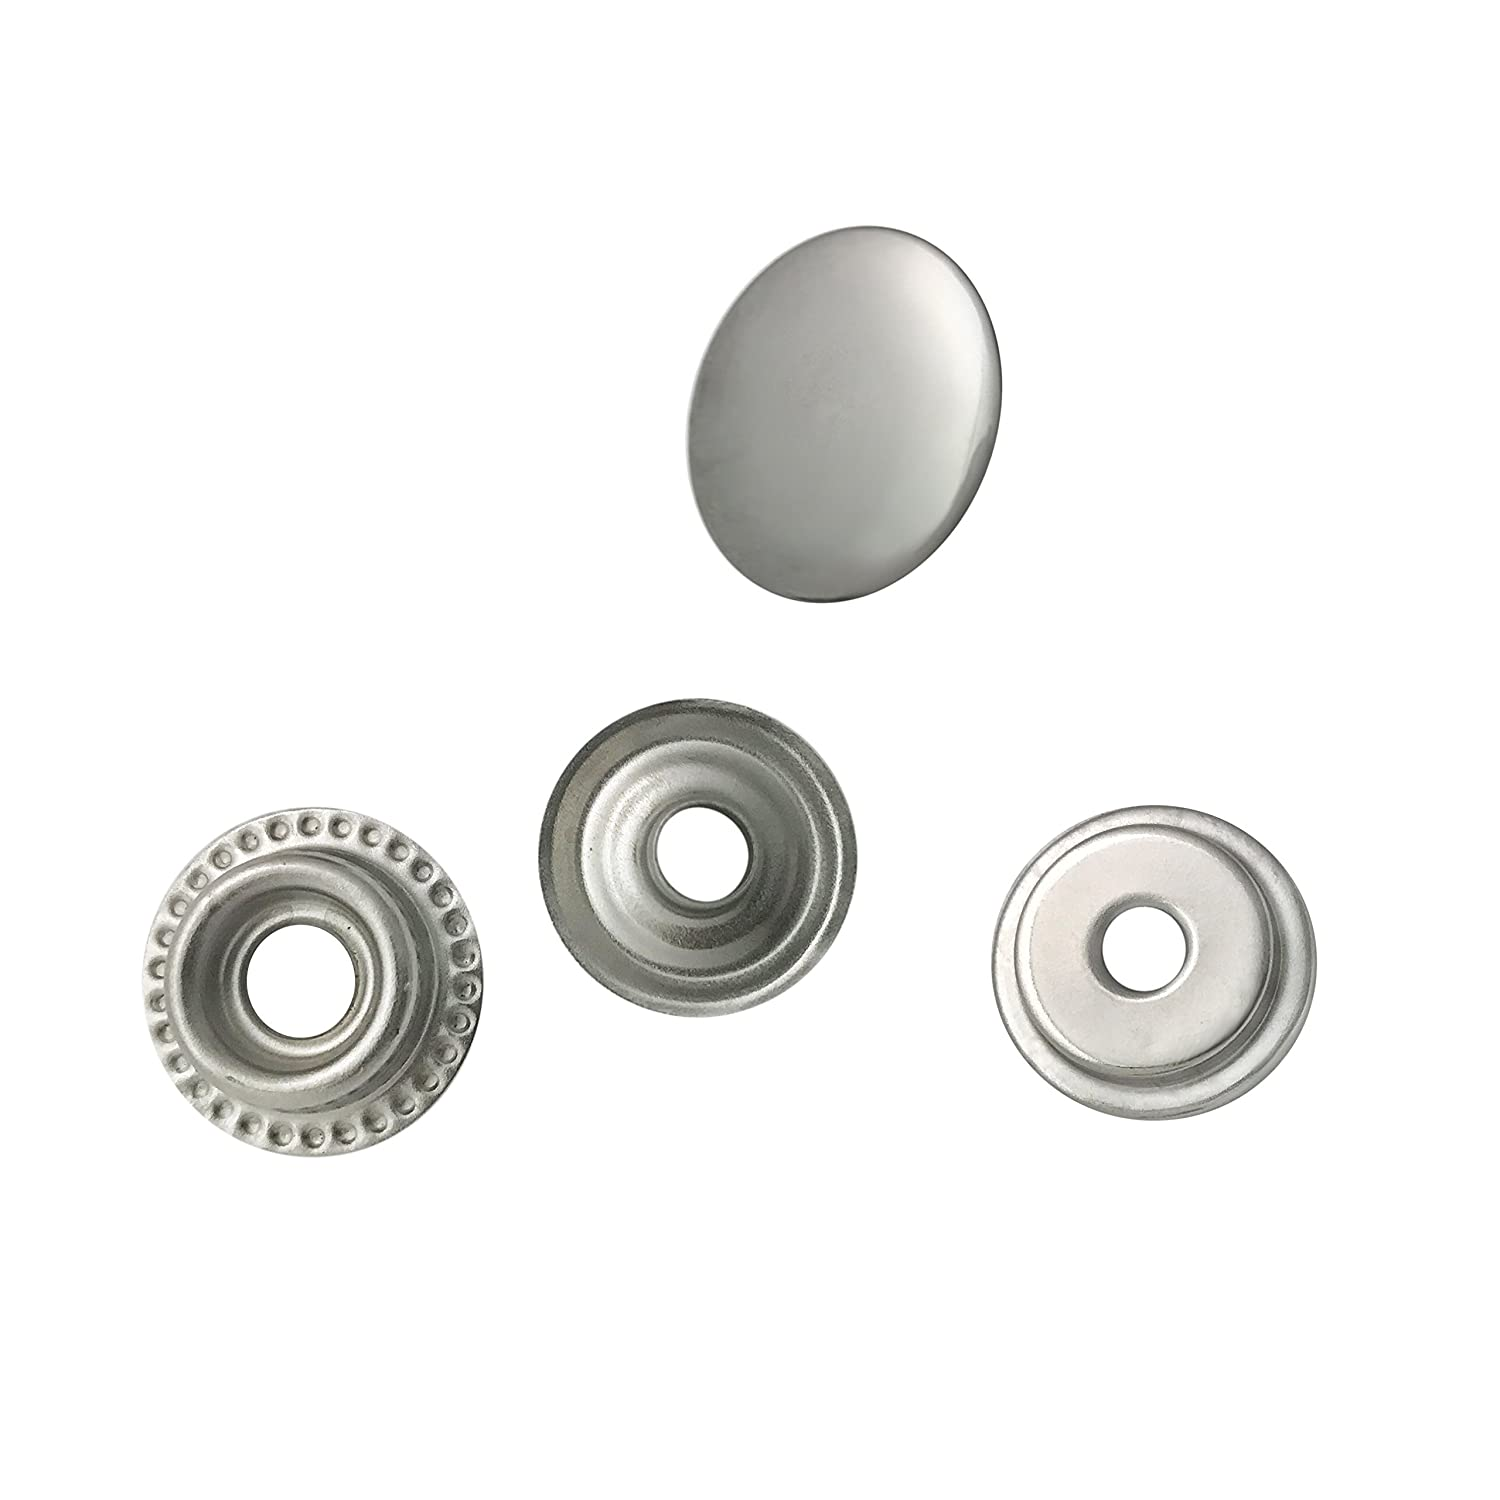 80 Pieces Stainless Steel Fastener Snap Set, Include Button Stud Socket and Eyelet, Marine Grade, 5/8 Inch Cap by WORLD 9.99 MALL